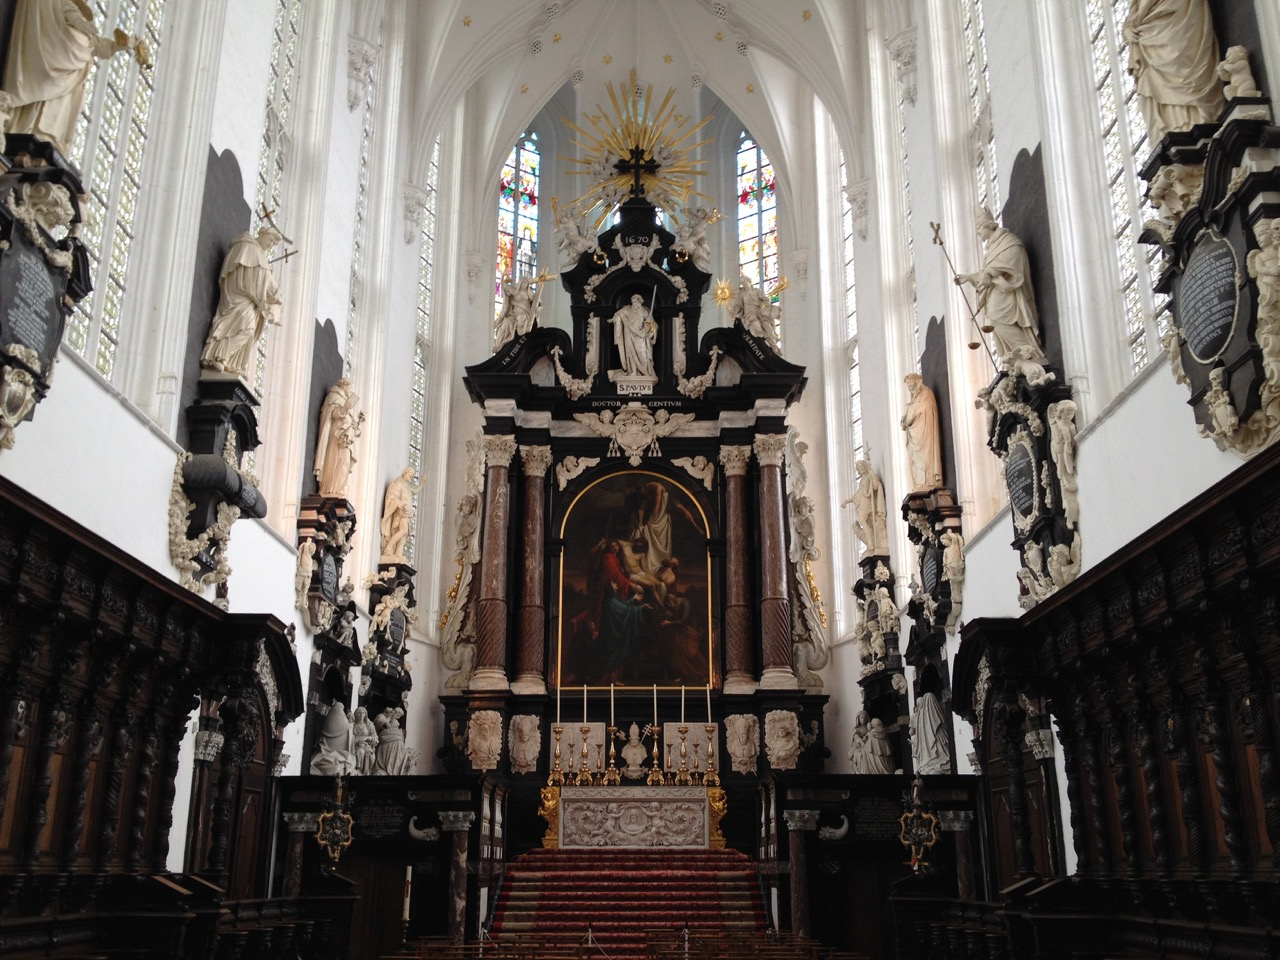 Counter reformation and the baroque based in belgium for Churches of baroque period